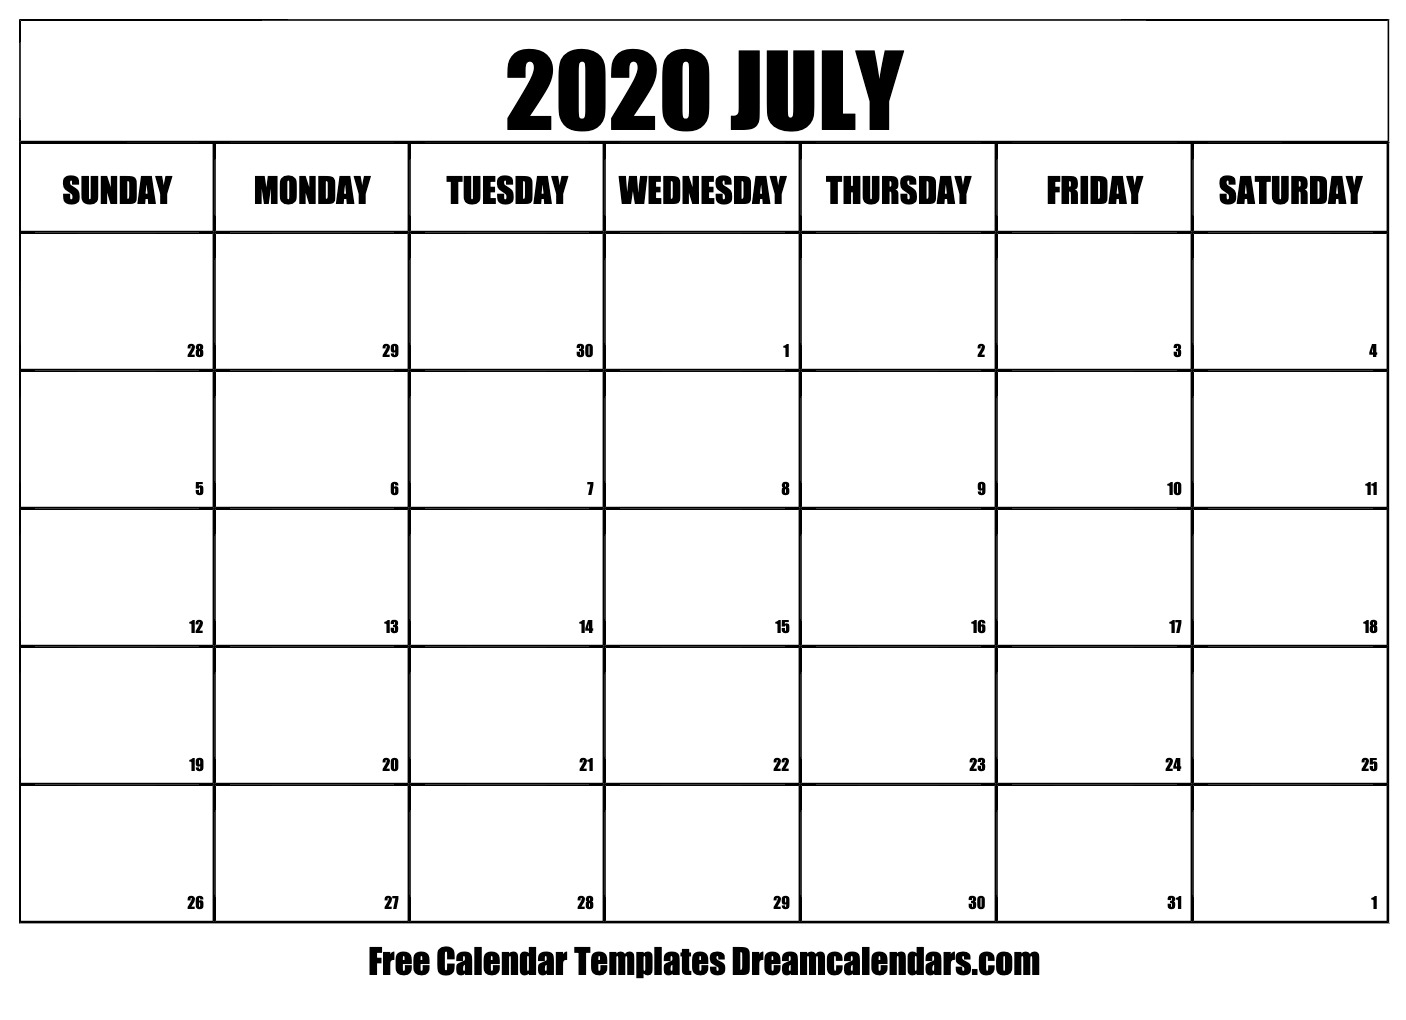 Printable July 2020 Calendar in Free Calendars 2020 Start With Monday